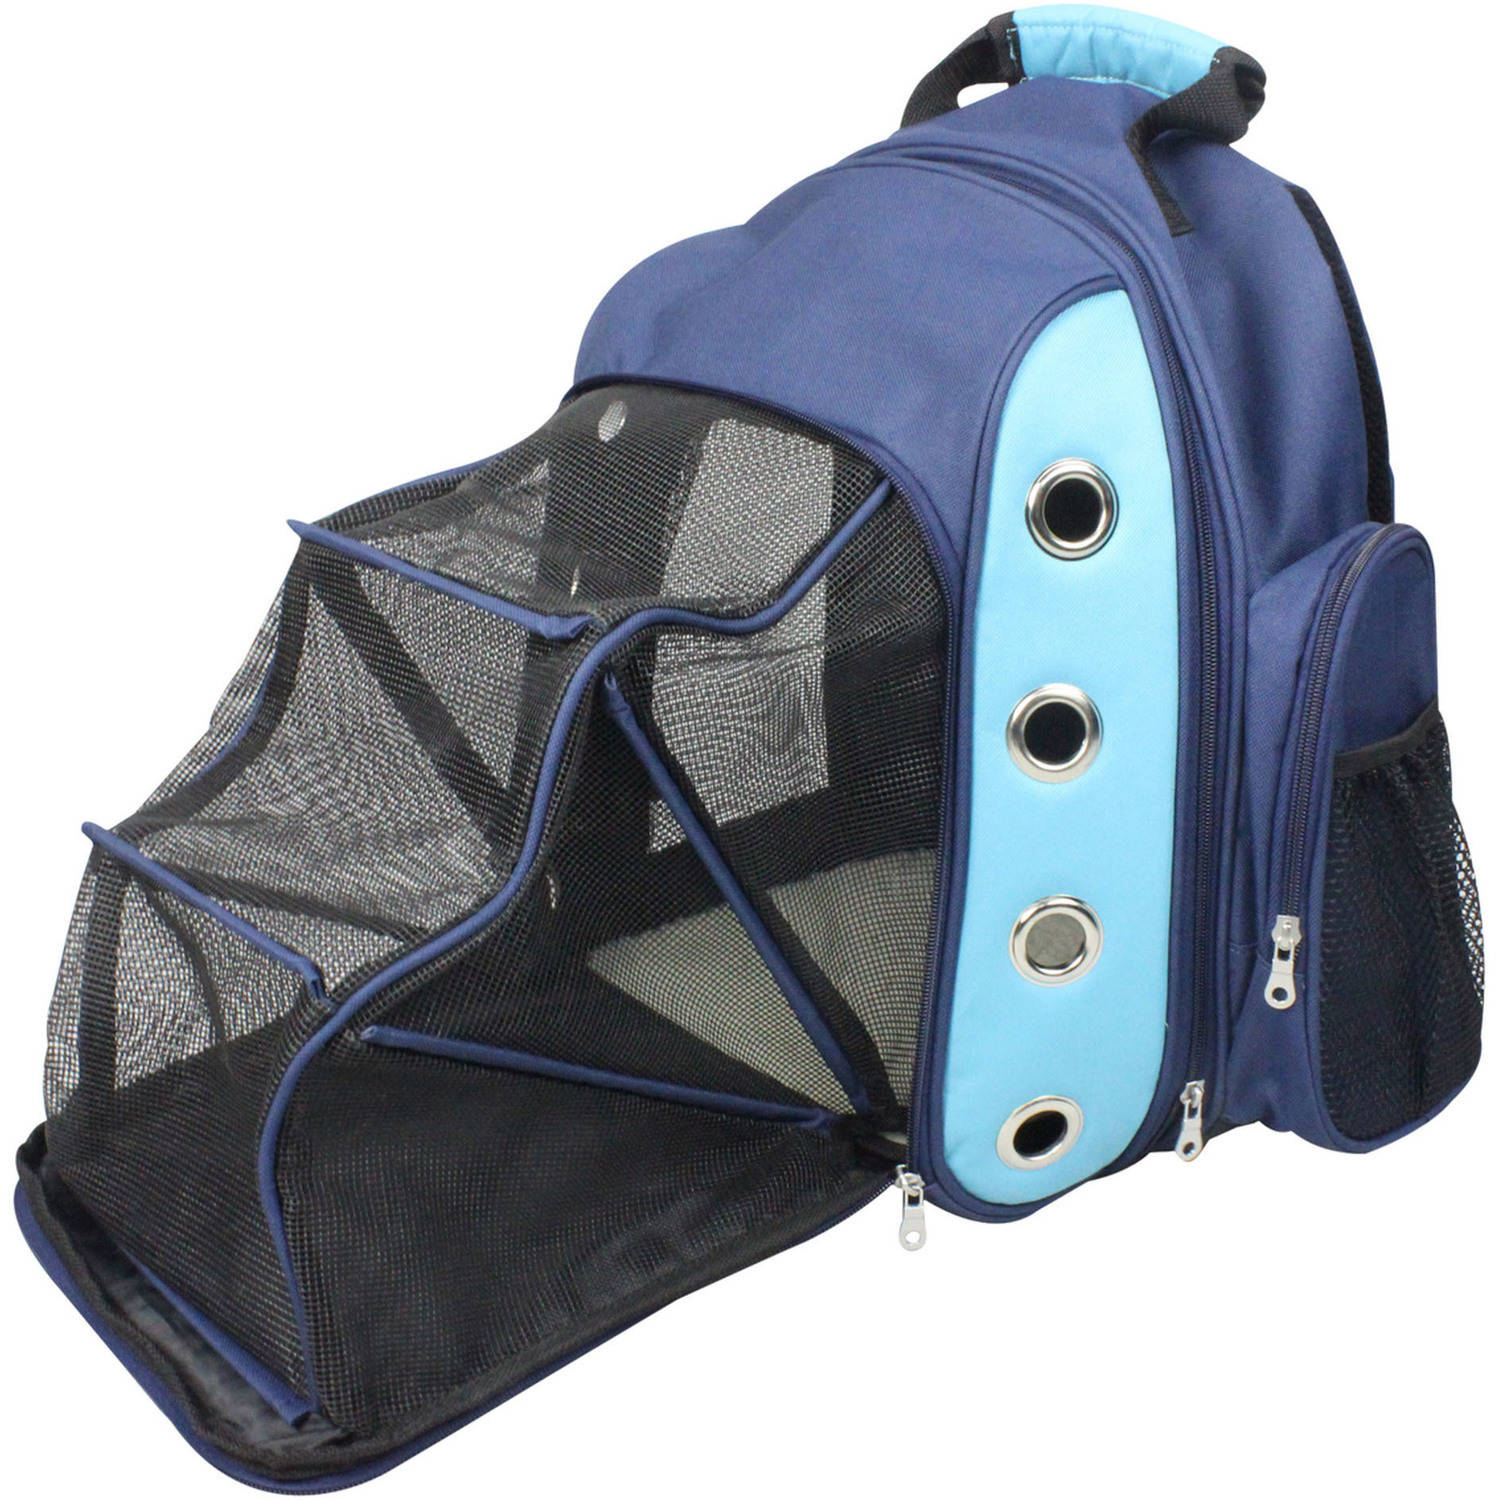 Iconic Pet FurryGo Luxury Backpack Pet Carrier with Lounge, Navy Blue by Iconic Pet